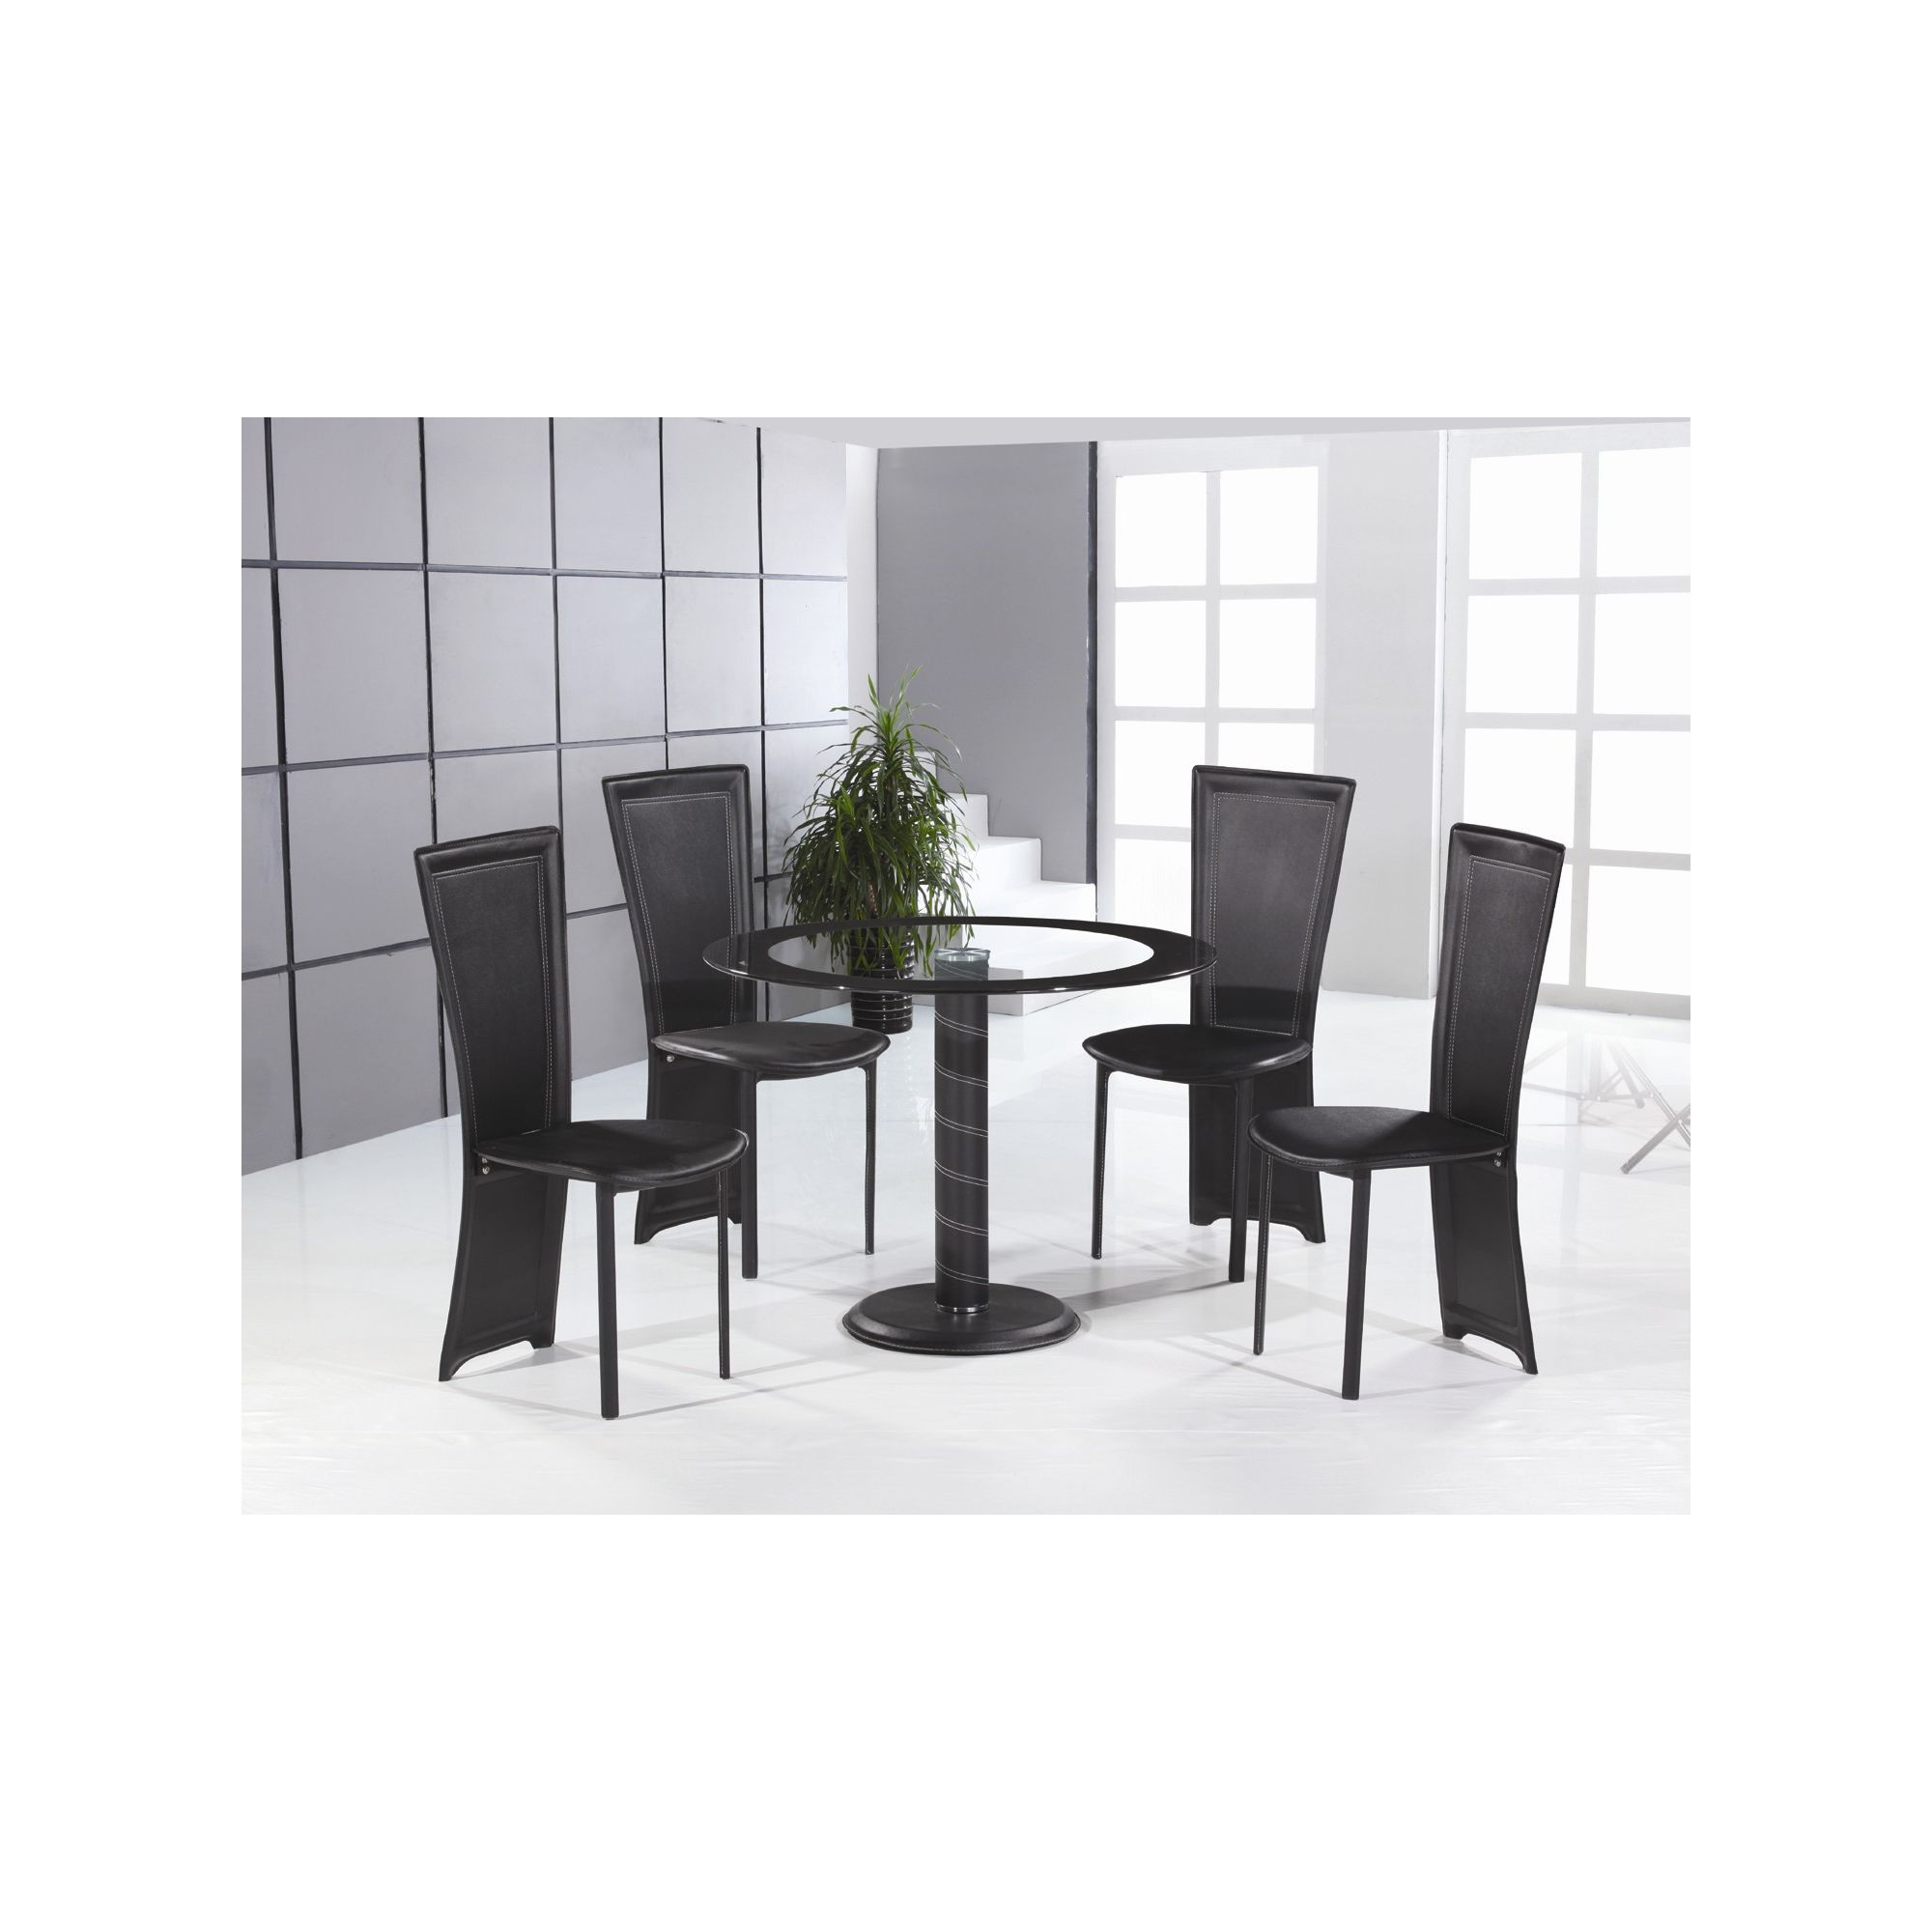 Home Zone Lenora 5 Piece Dining Set at Tesco Direct